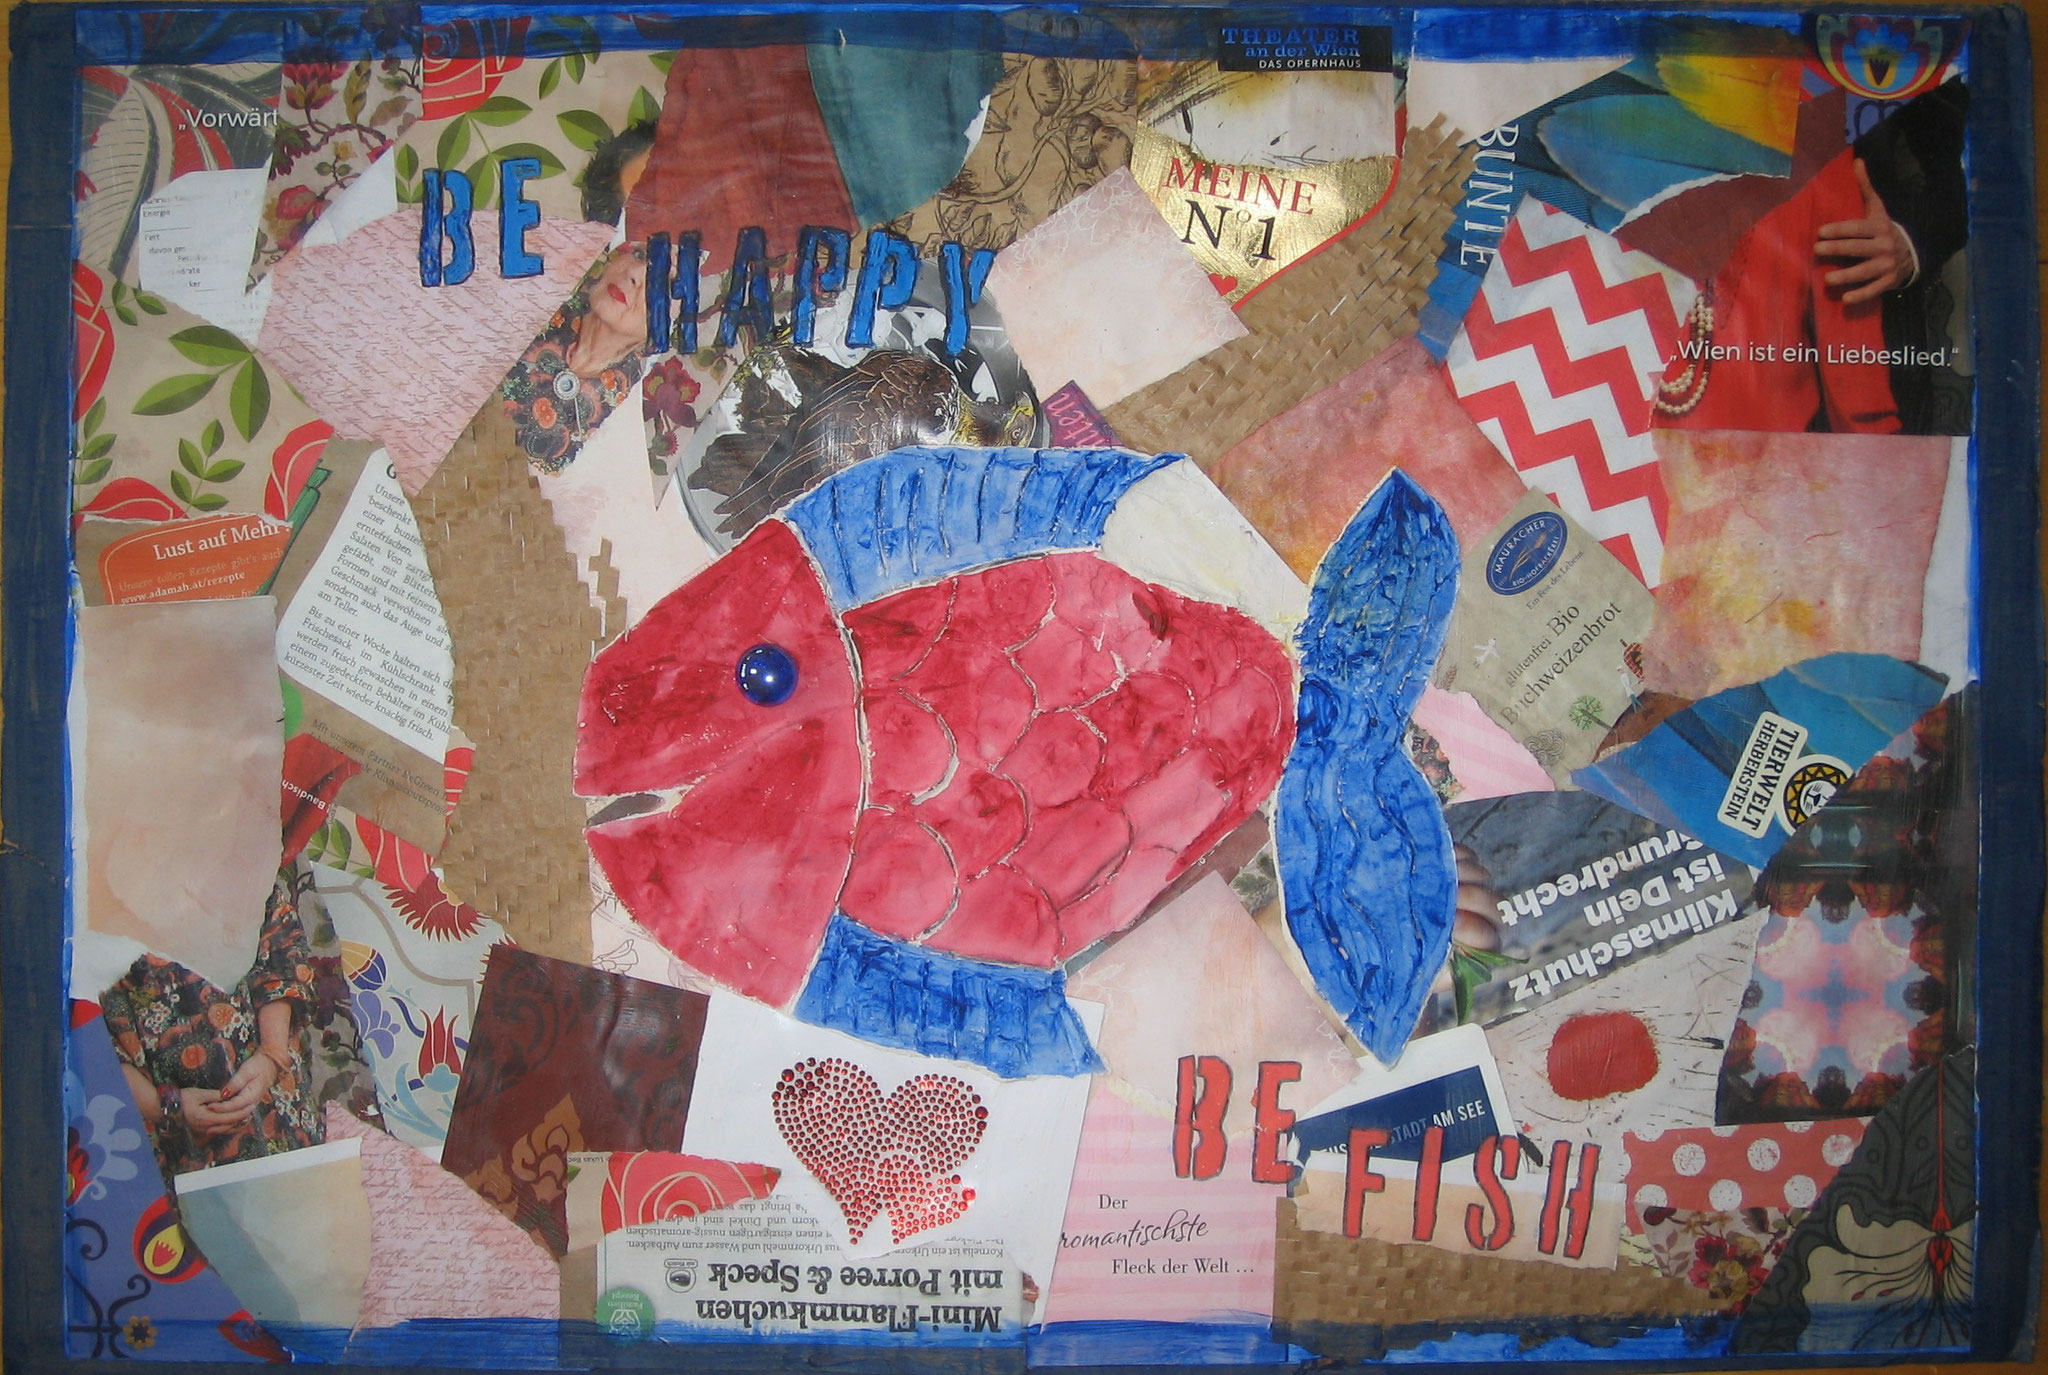 Be happy, be fish (Collage auf Pappe)